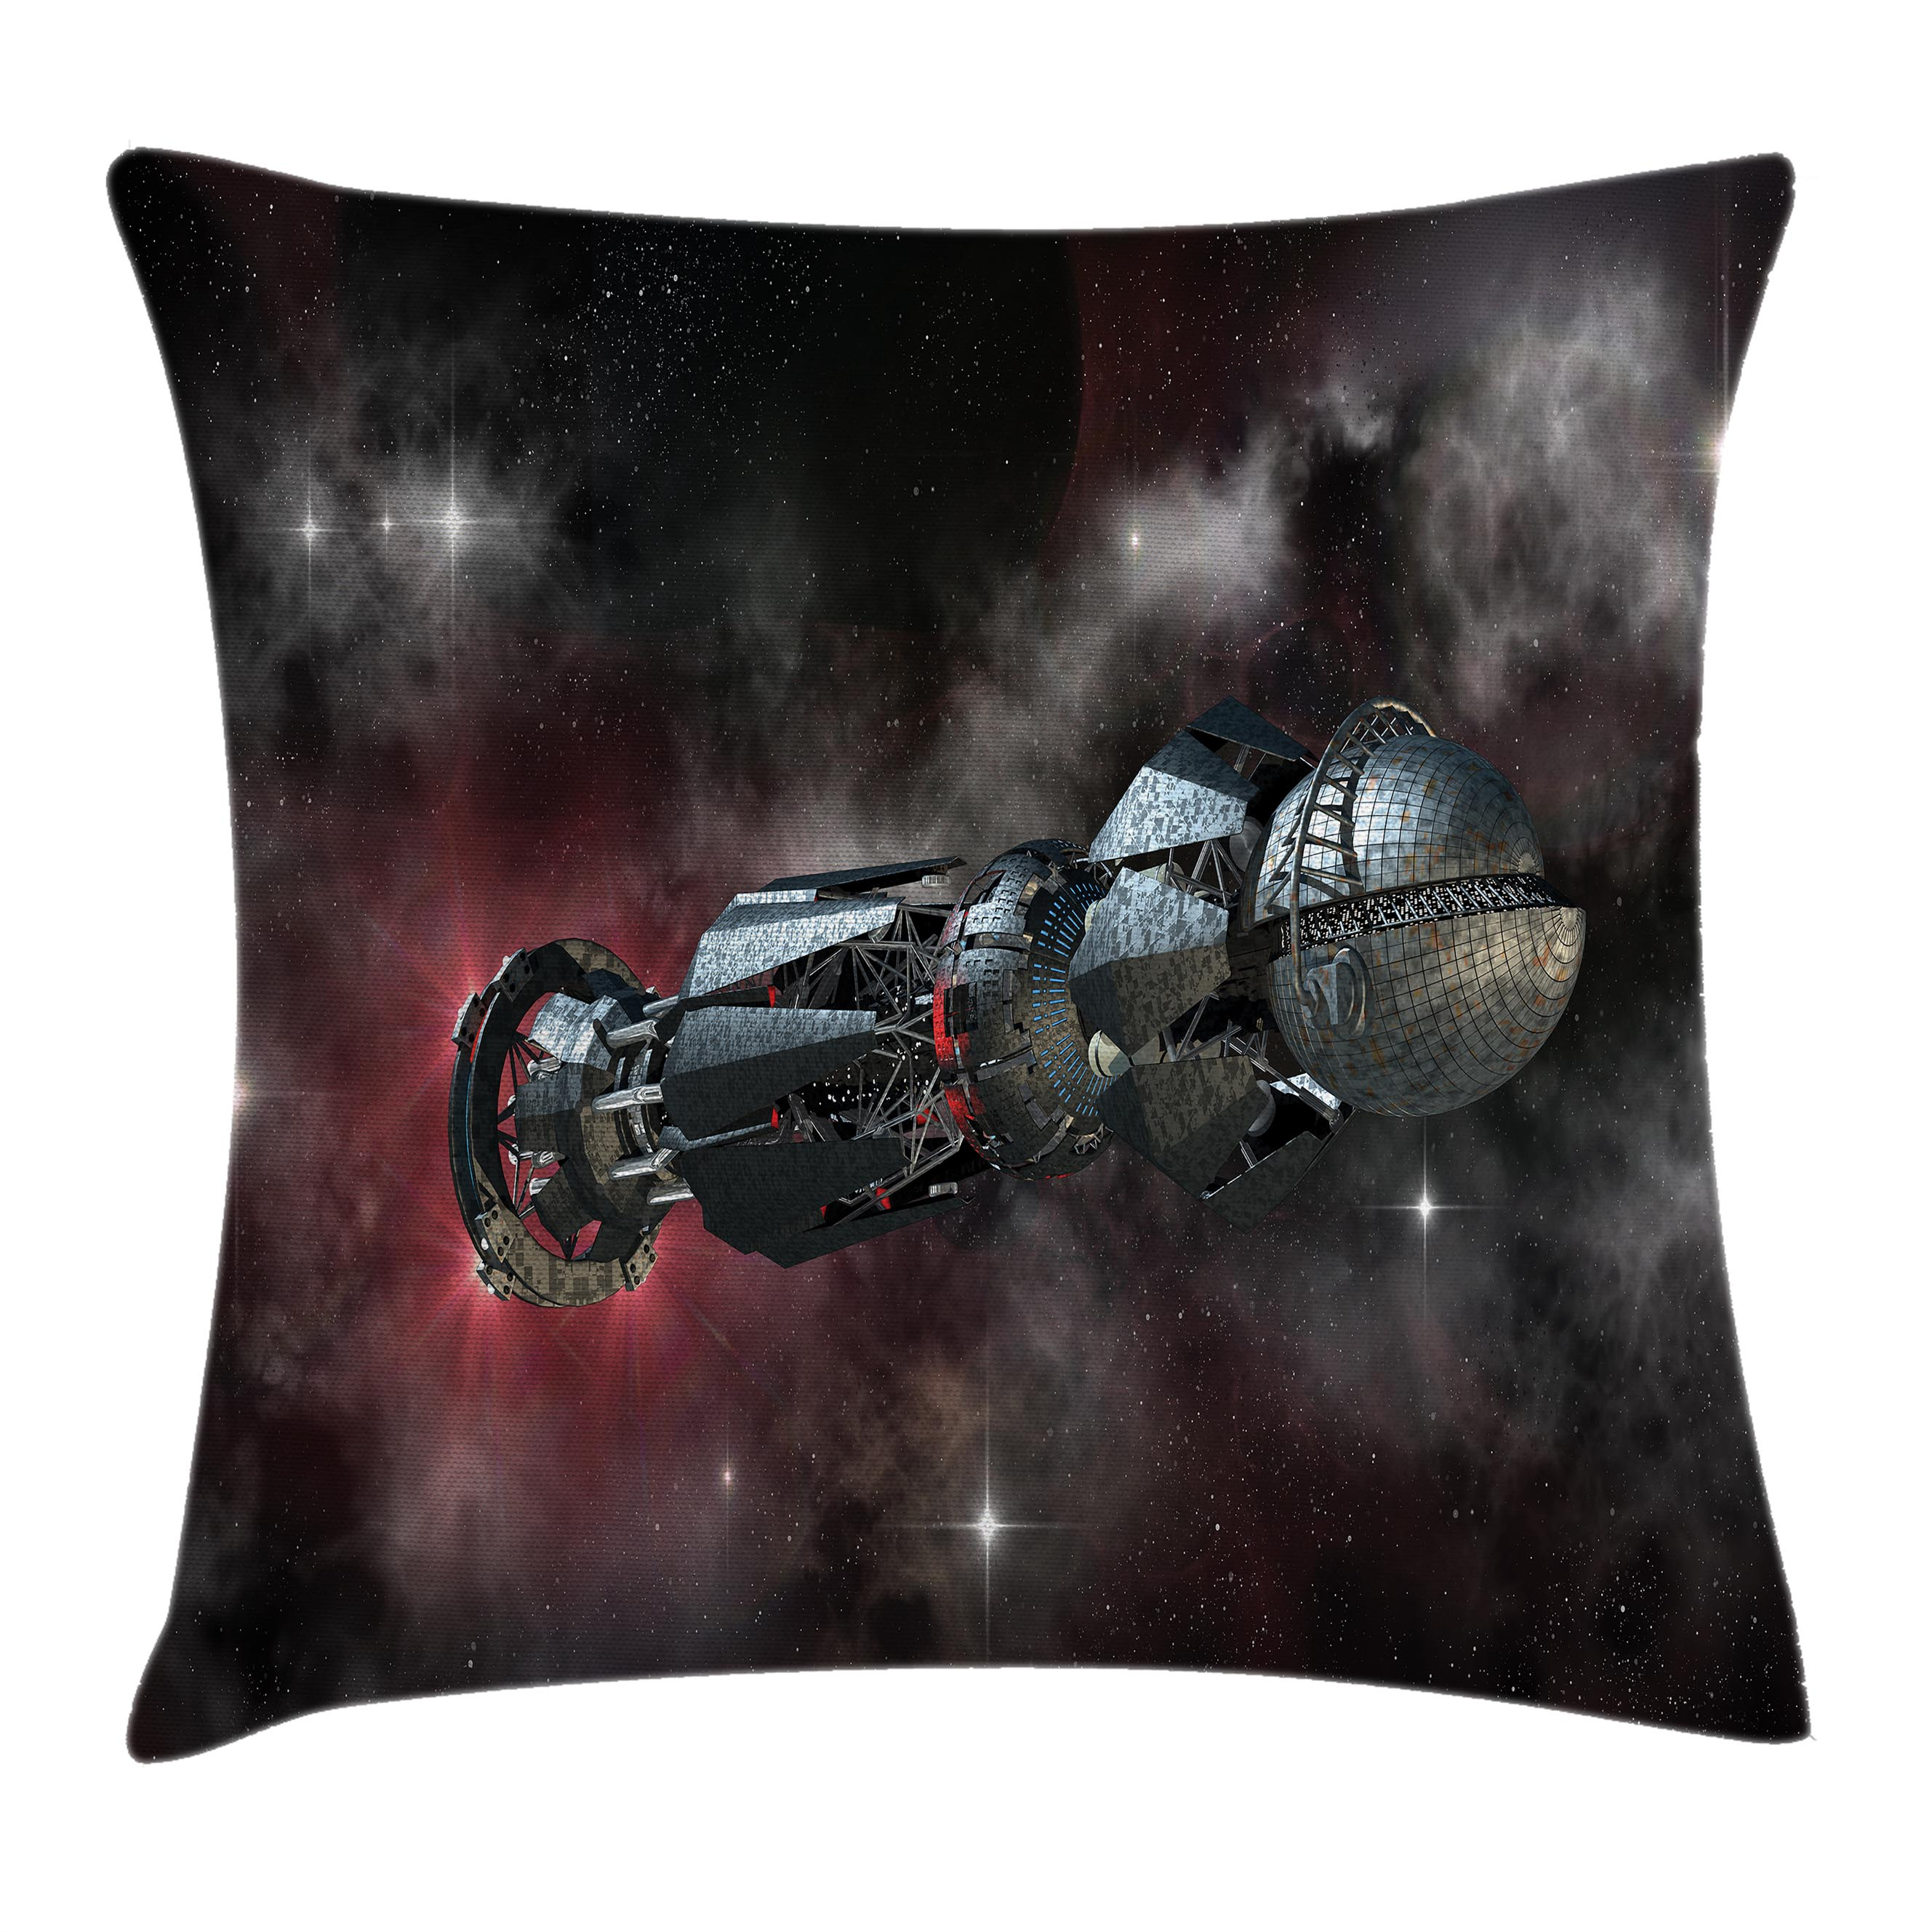 Galaxy Throw Pillow Cushion Cover, Spaceship in Interstellar Travel on a Galactic Starfield Alien Fantasy Science Fiction, Decorative Square Accent Pillow Case, 20 X 20 Inches, Black, by Ambesonne